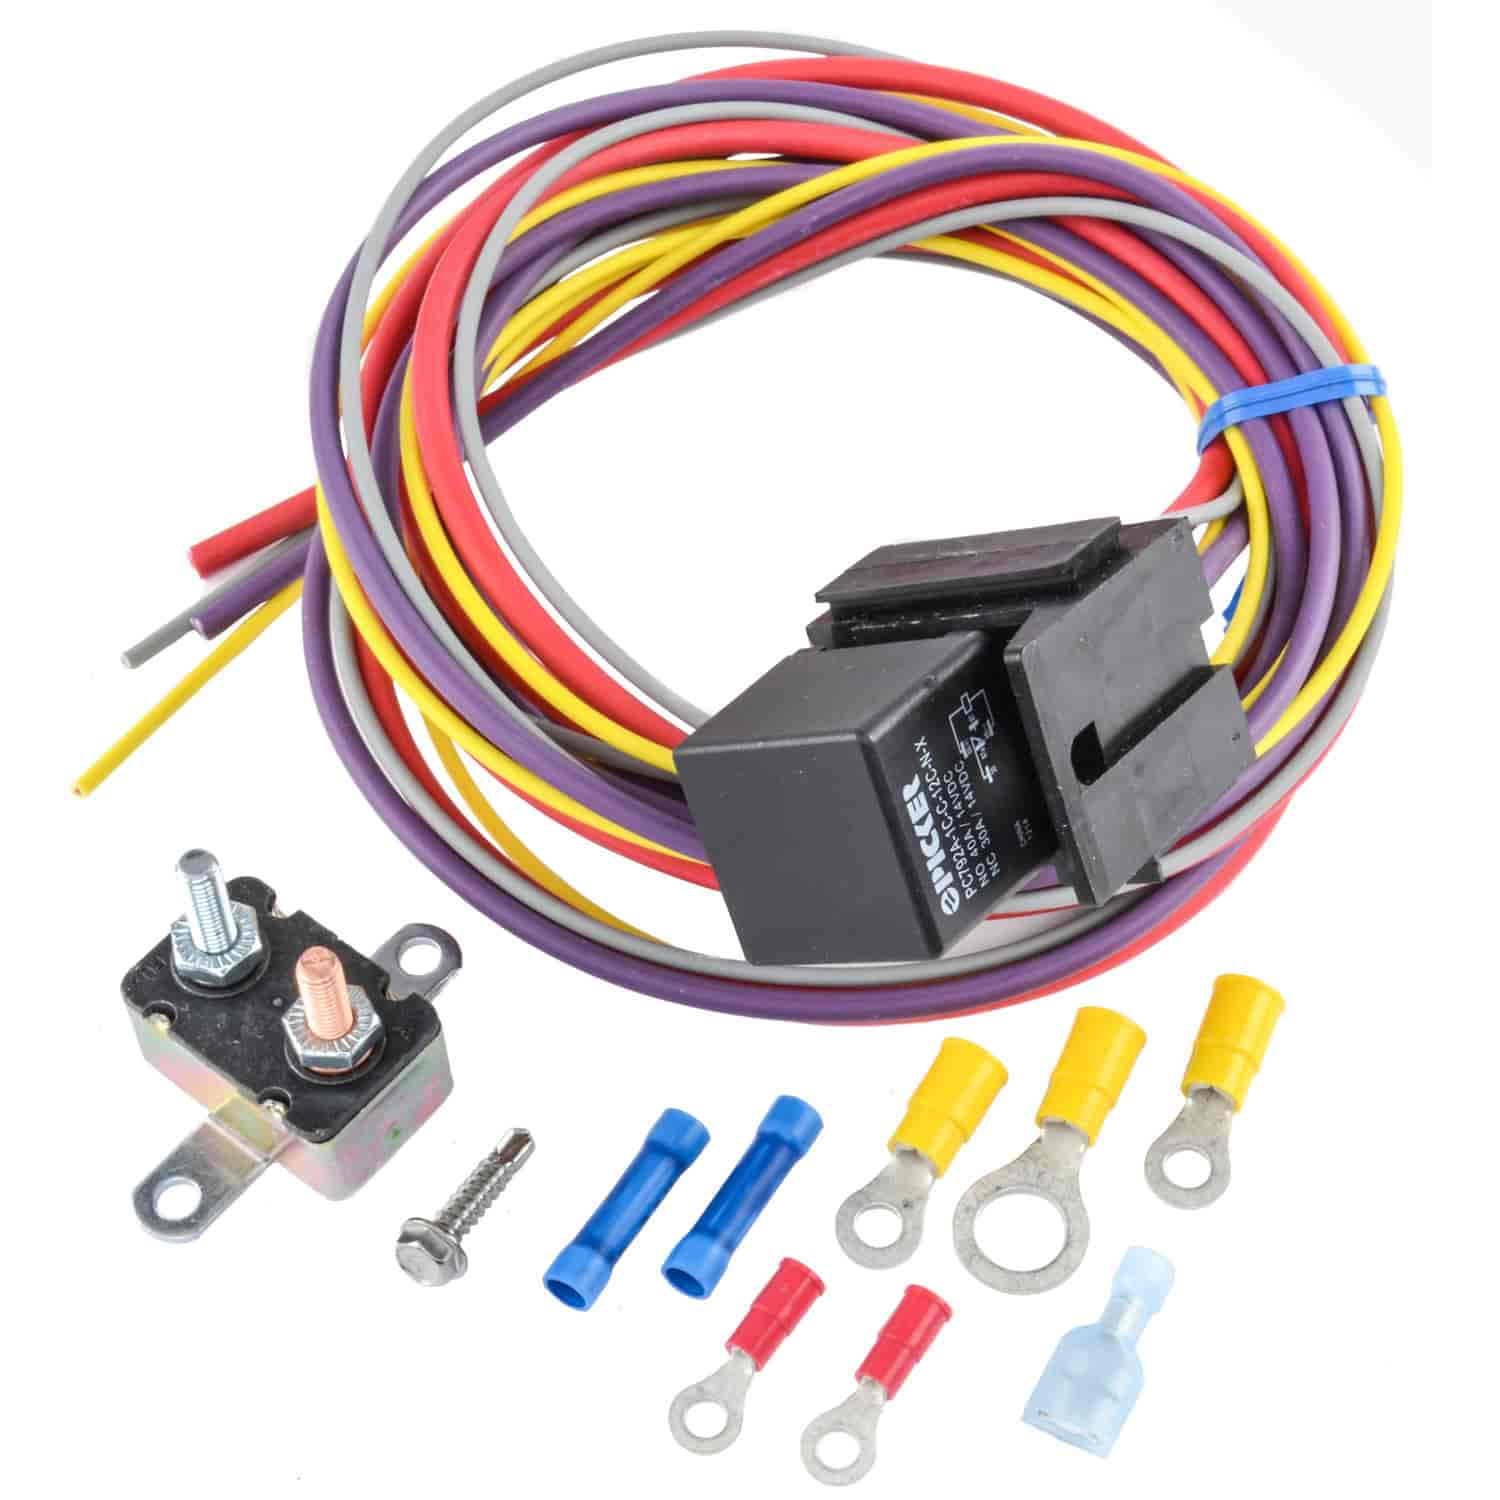 555 10559 jegs performance products 10559 manual controlled single fan jegs universal wiring harness at alyssarenee.co